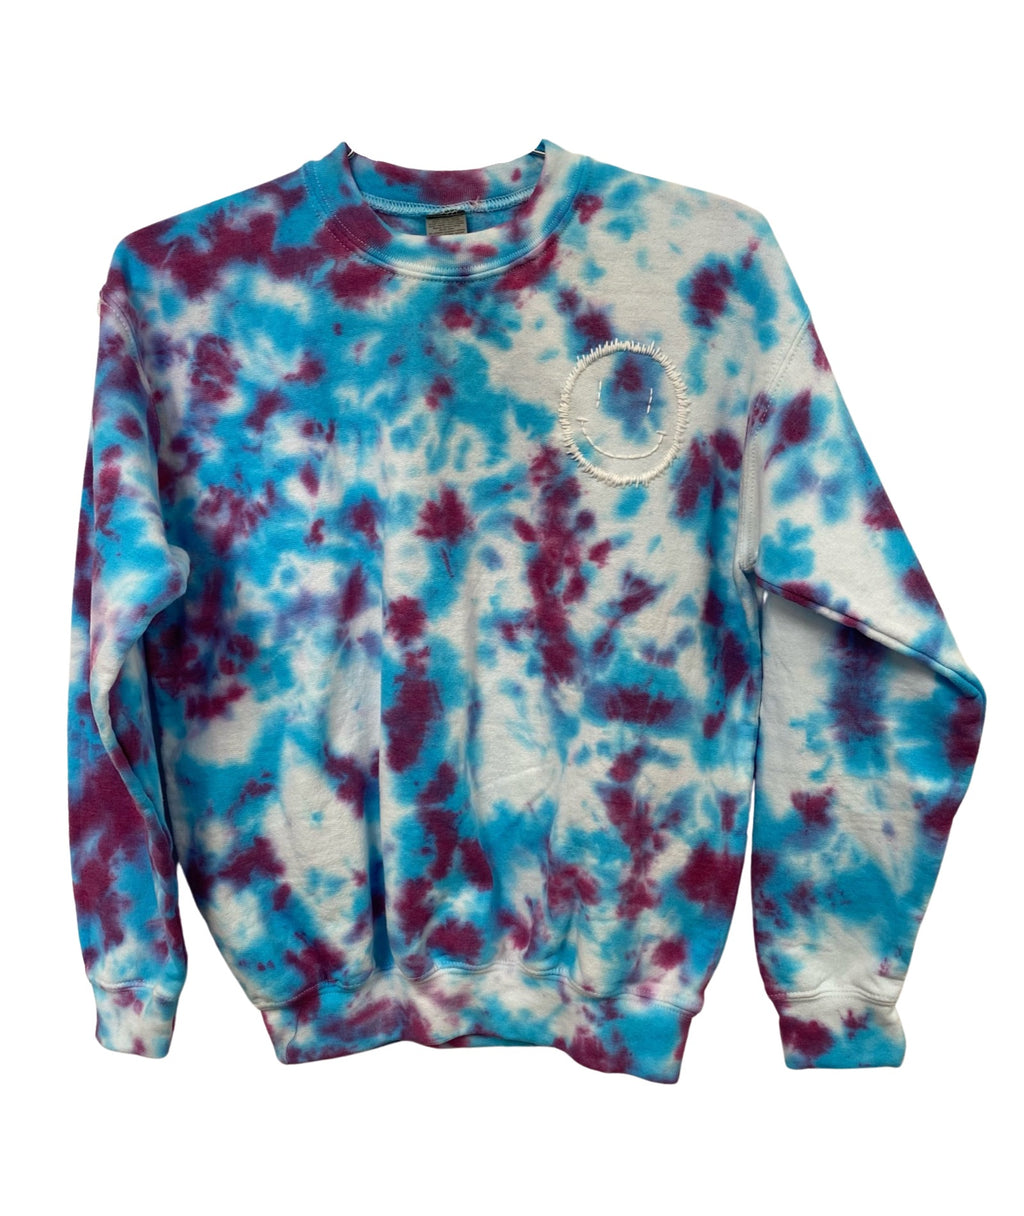 Clothes 4 a Cause Girls Purple and Blue Tie Dye Smile Embroidered Sweatshirt